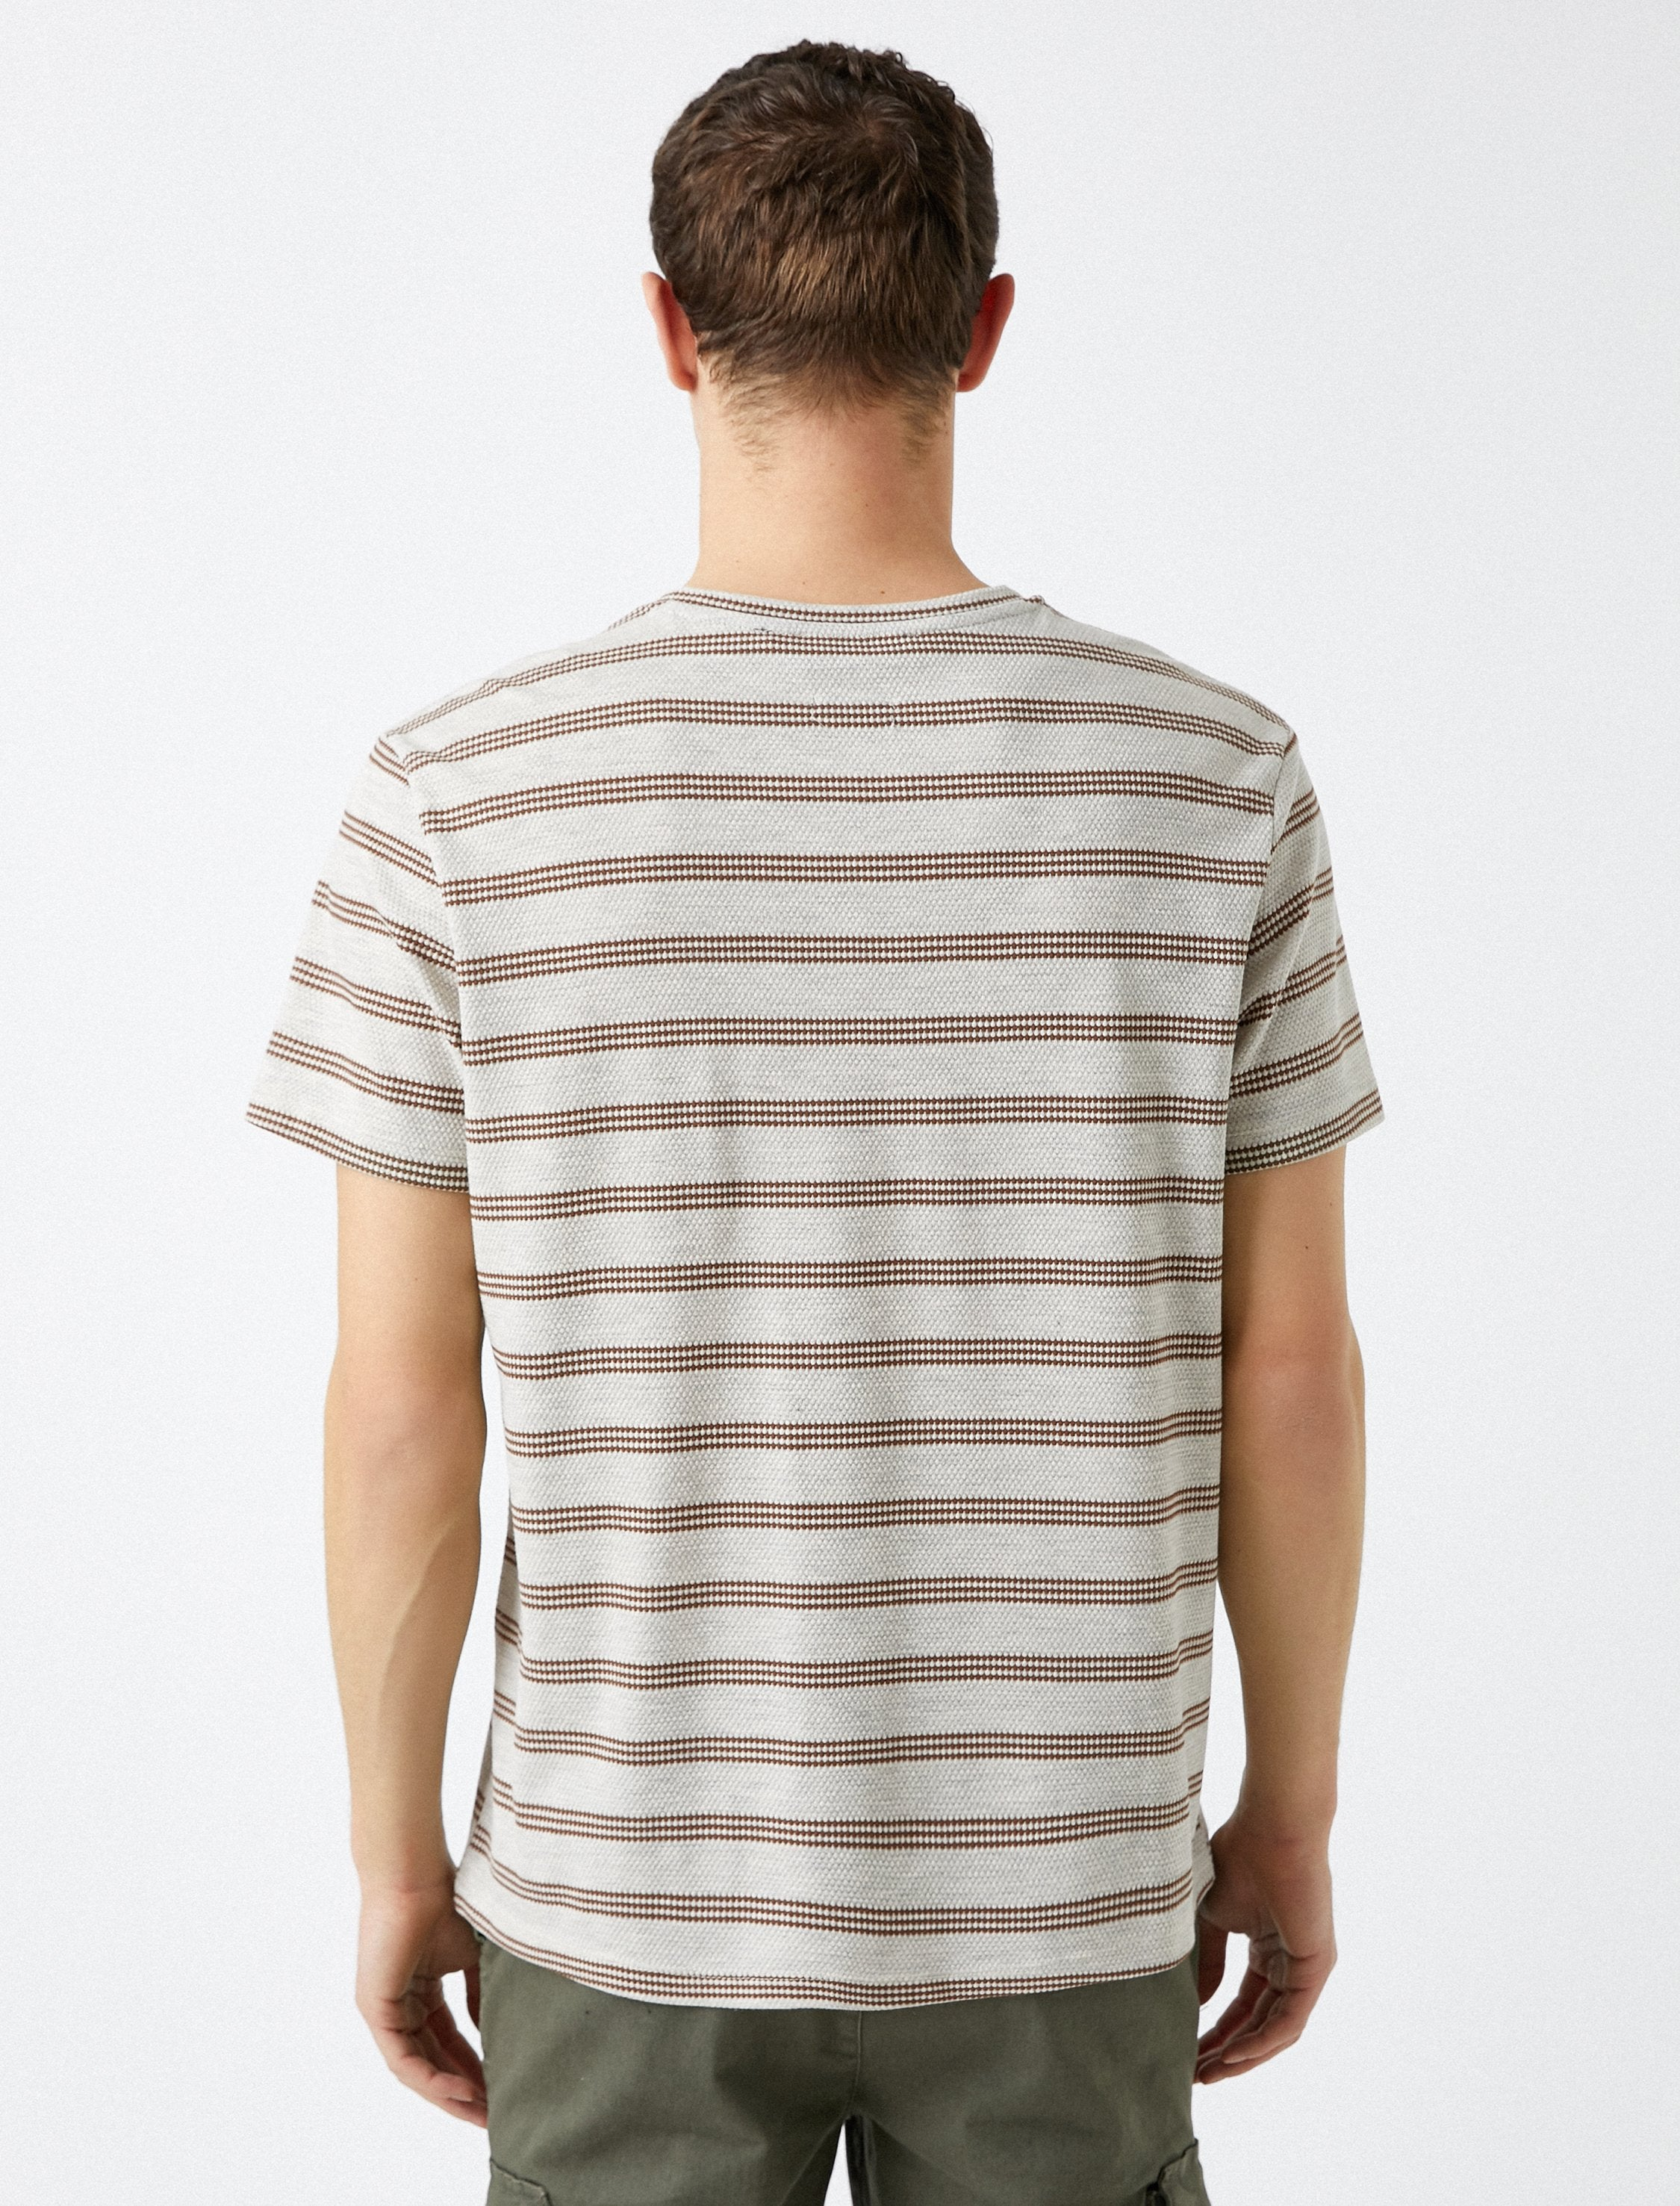 Striped Honeycomb Tshirt in Tan